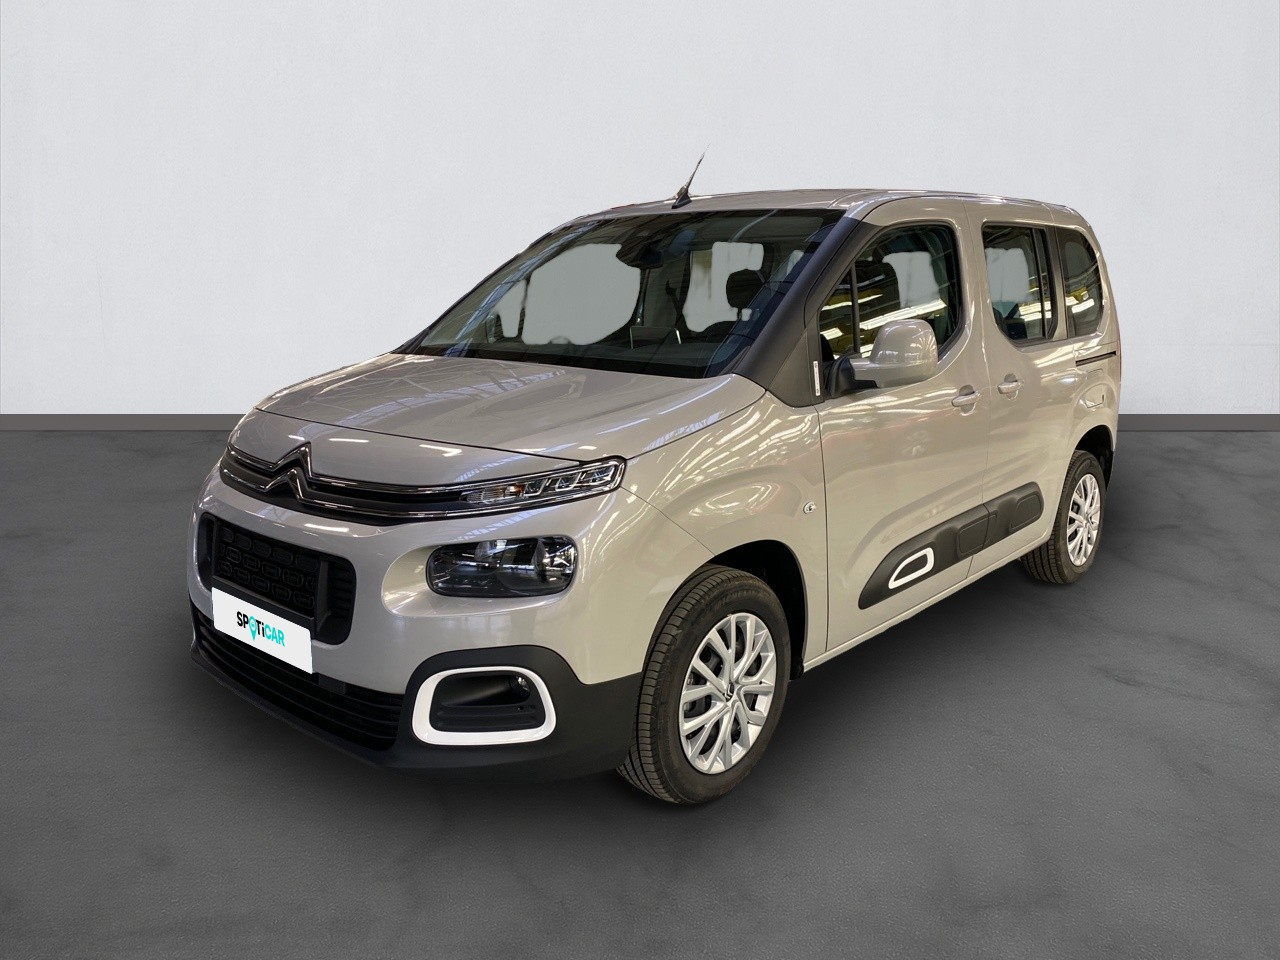 CITROEN BERLINGO TAILLE M BLUEHDI 130 S&S BVM6 FEEL